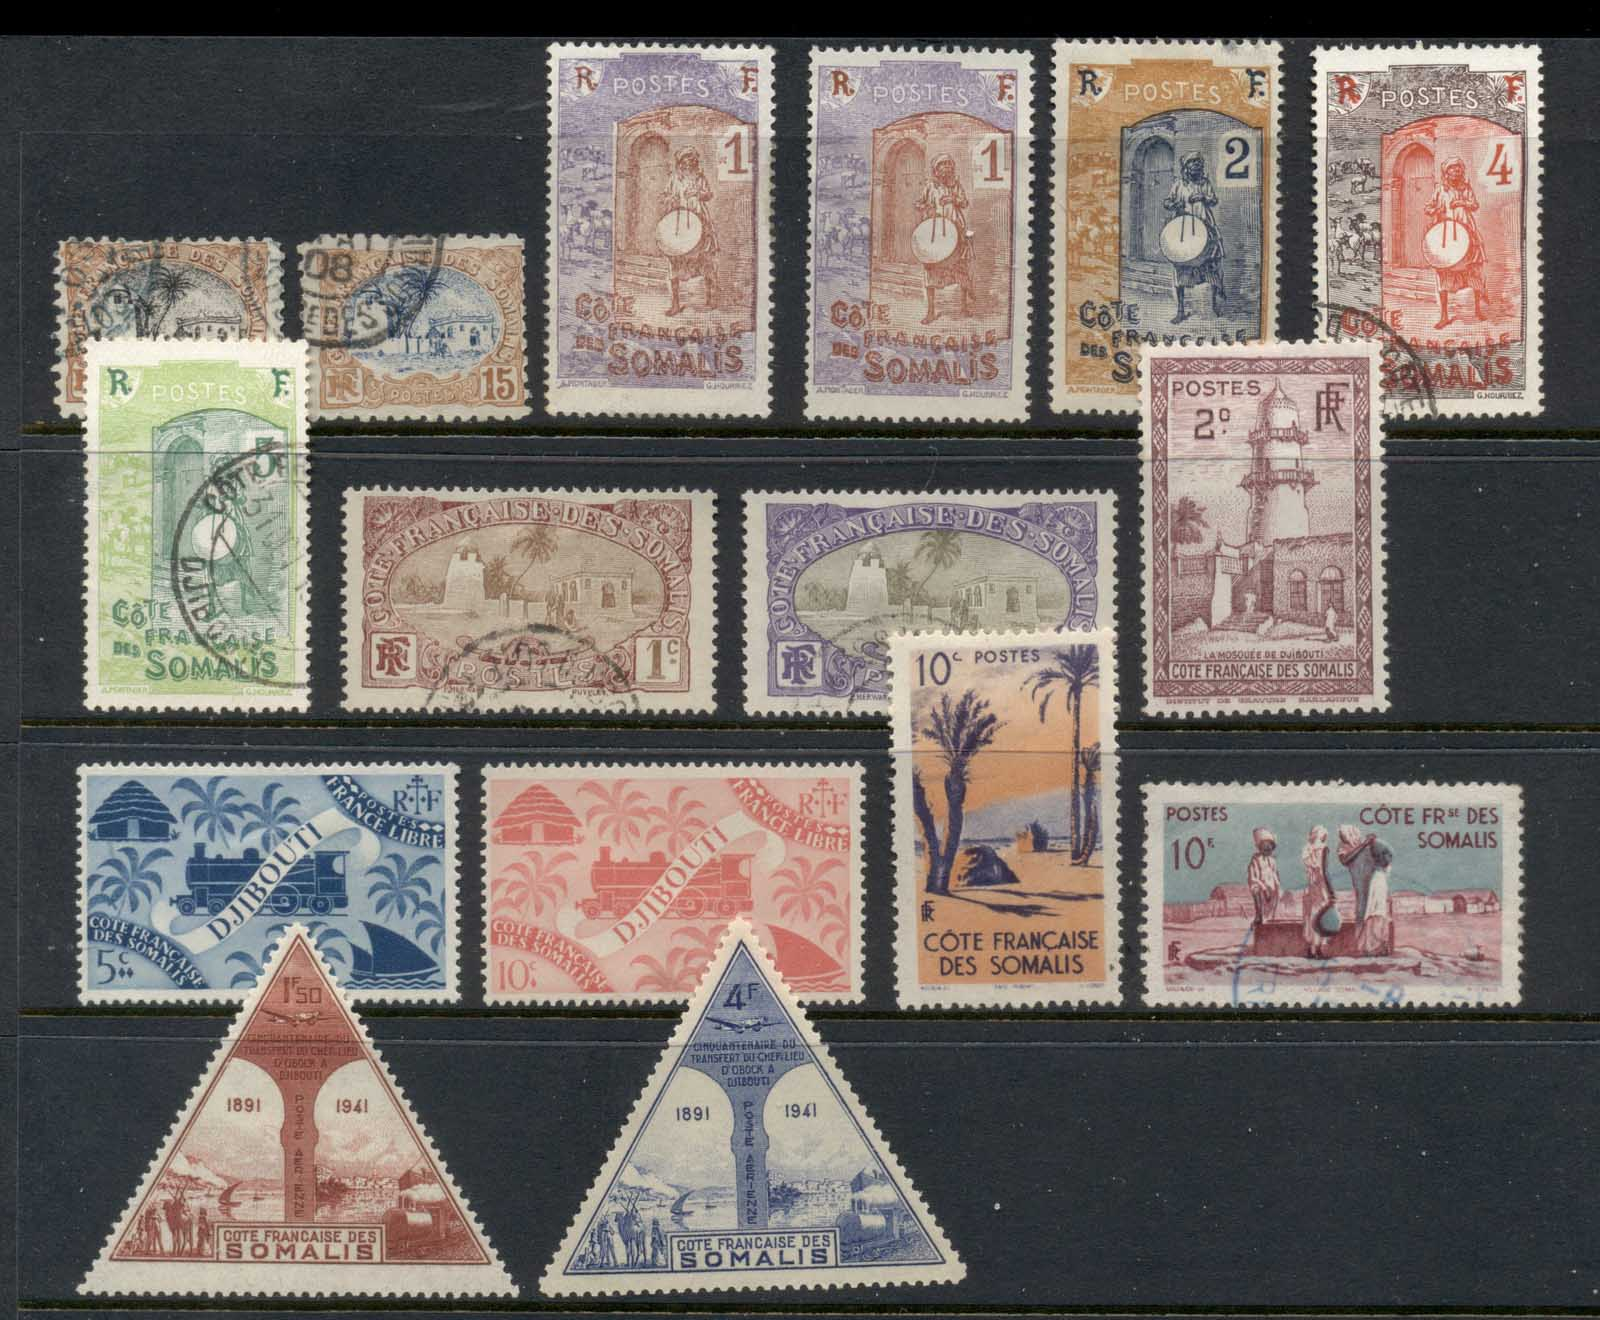 Somali Coast 1902 on Assorted Oddments